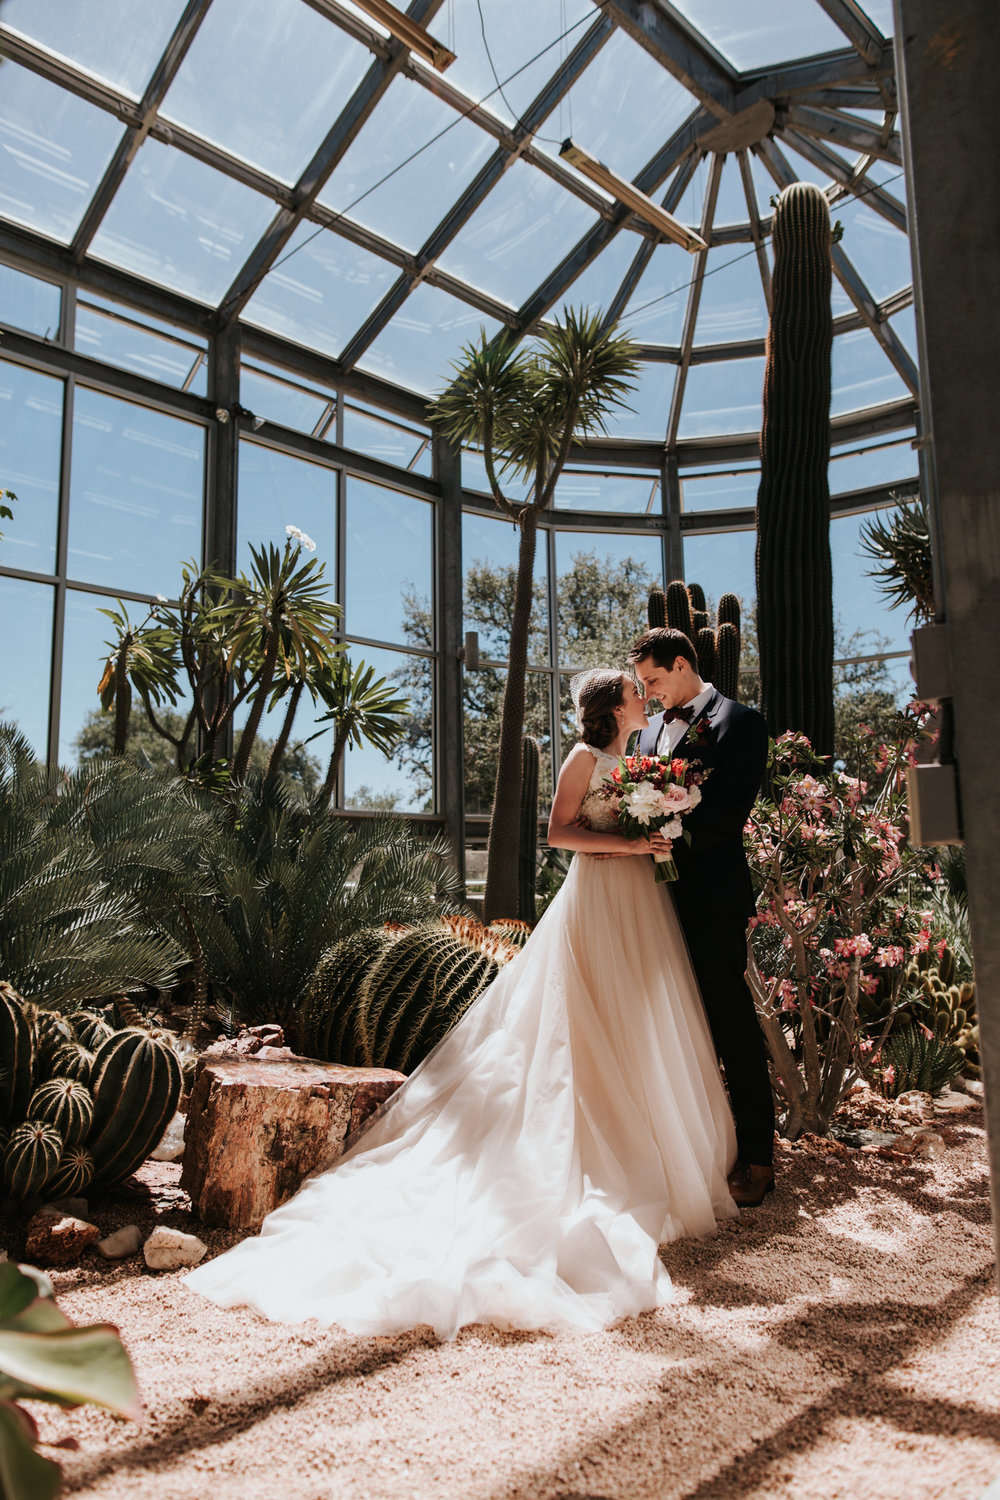 Bride and Groom inside a Greenhouse at Driftwood